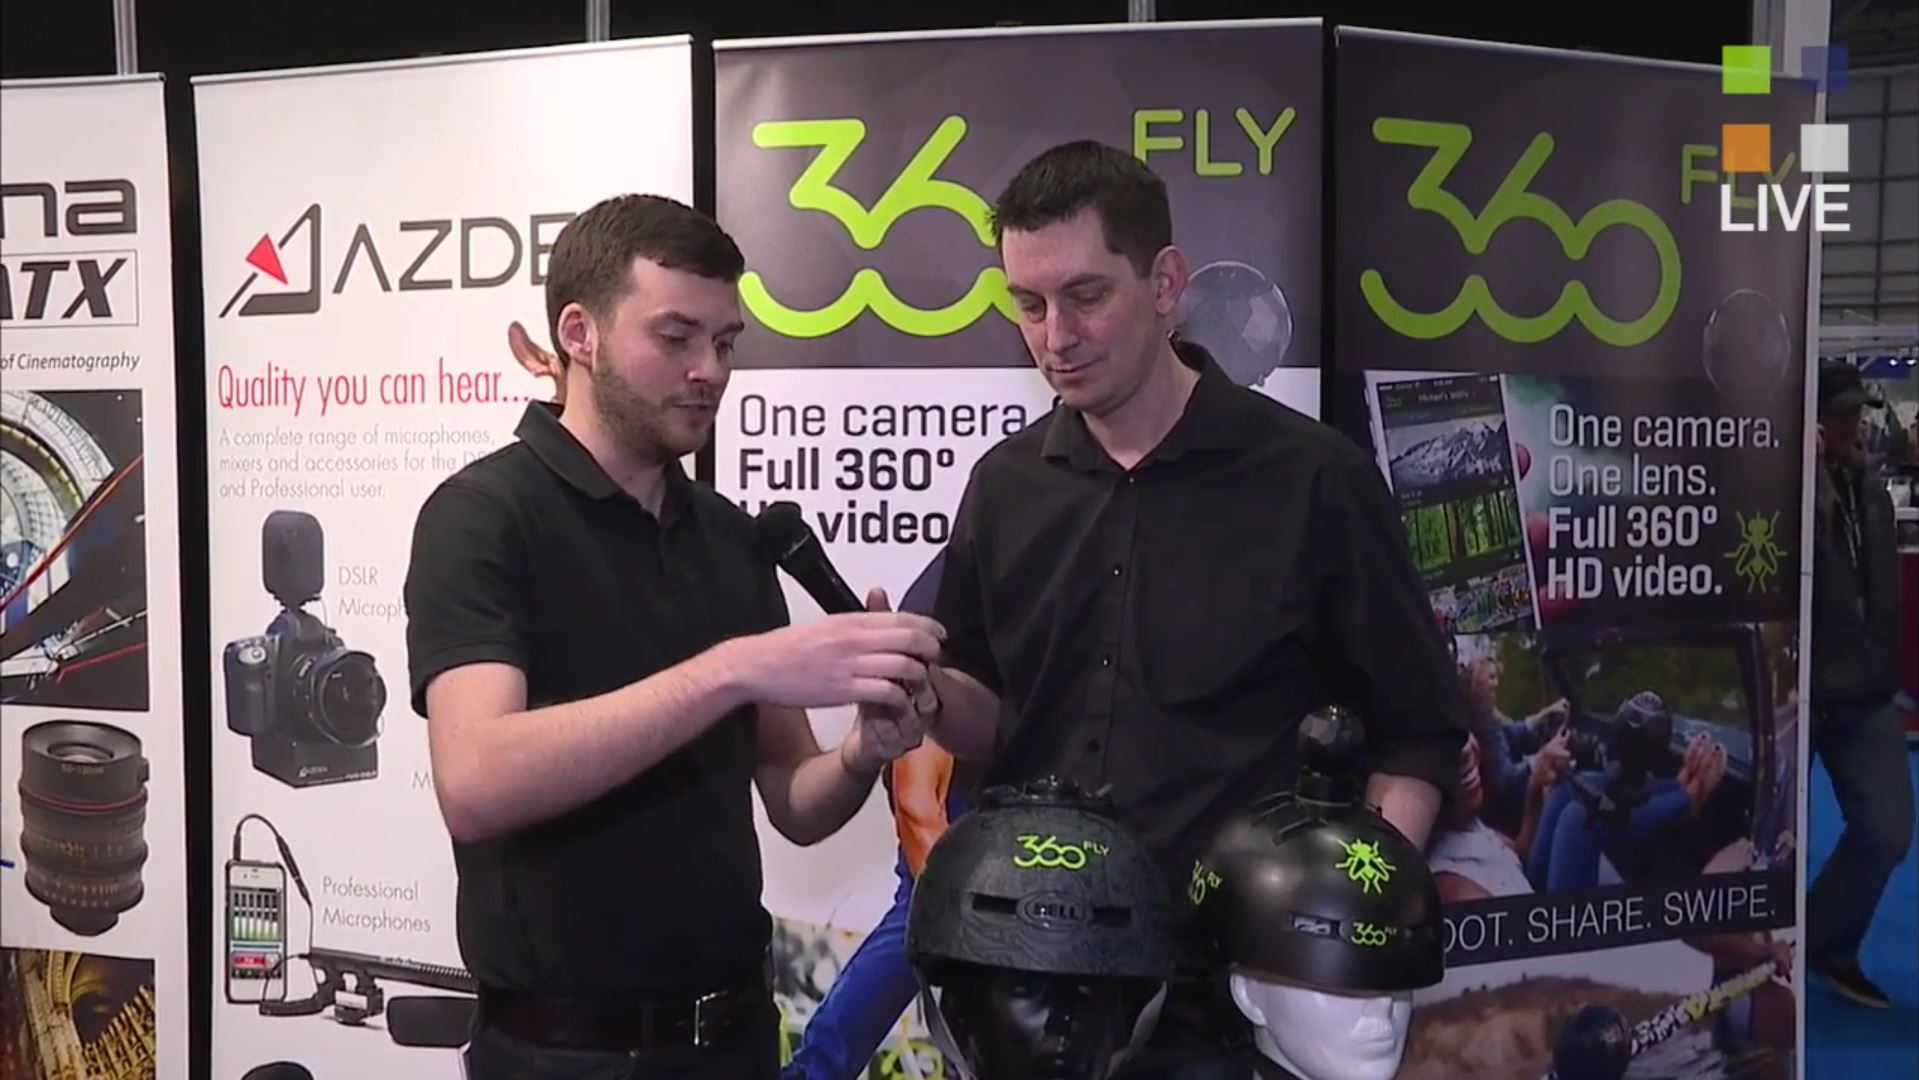 The 360FLY at BVE 2016